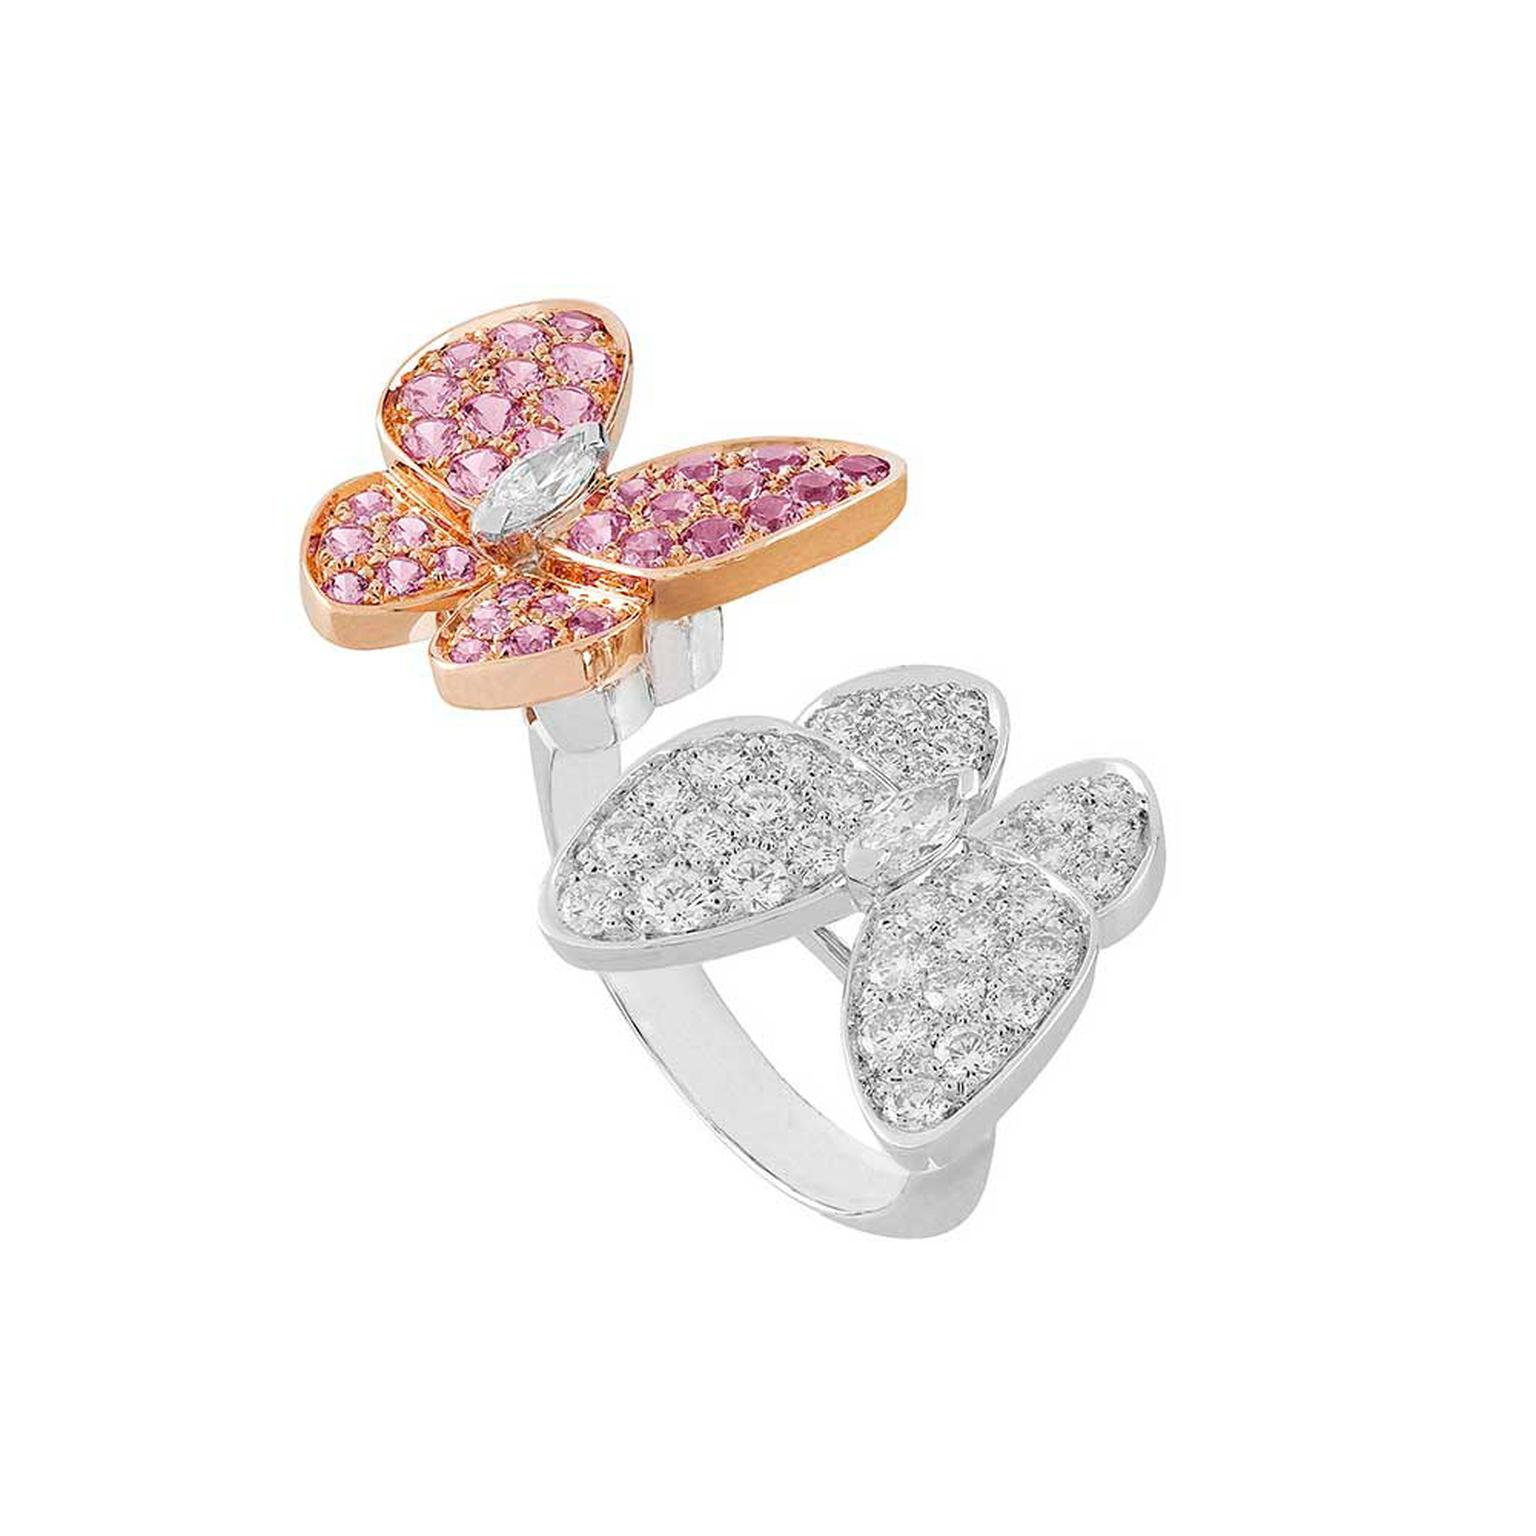 Van Cleef & Arpels Two Butterfly ring